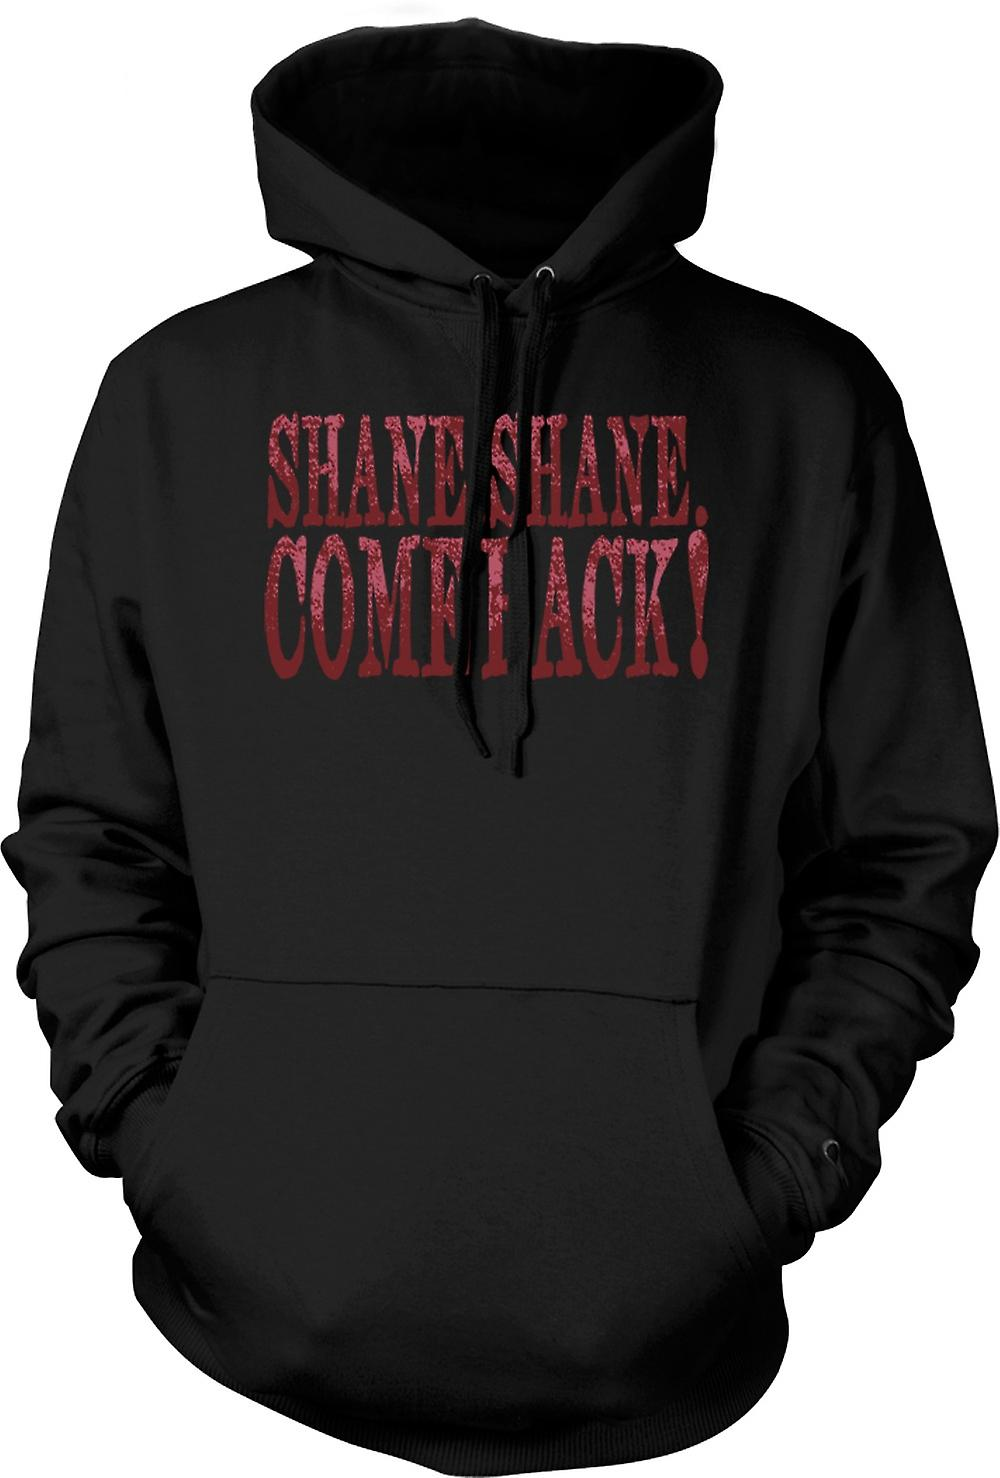 Mens Hoodie - Shane Shane Come Back - Movie